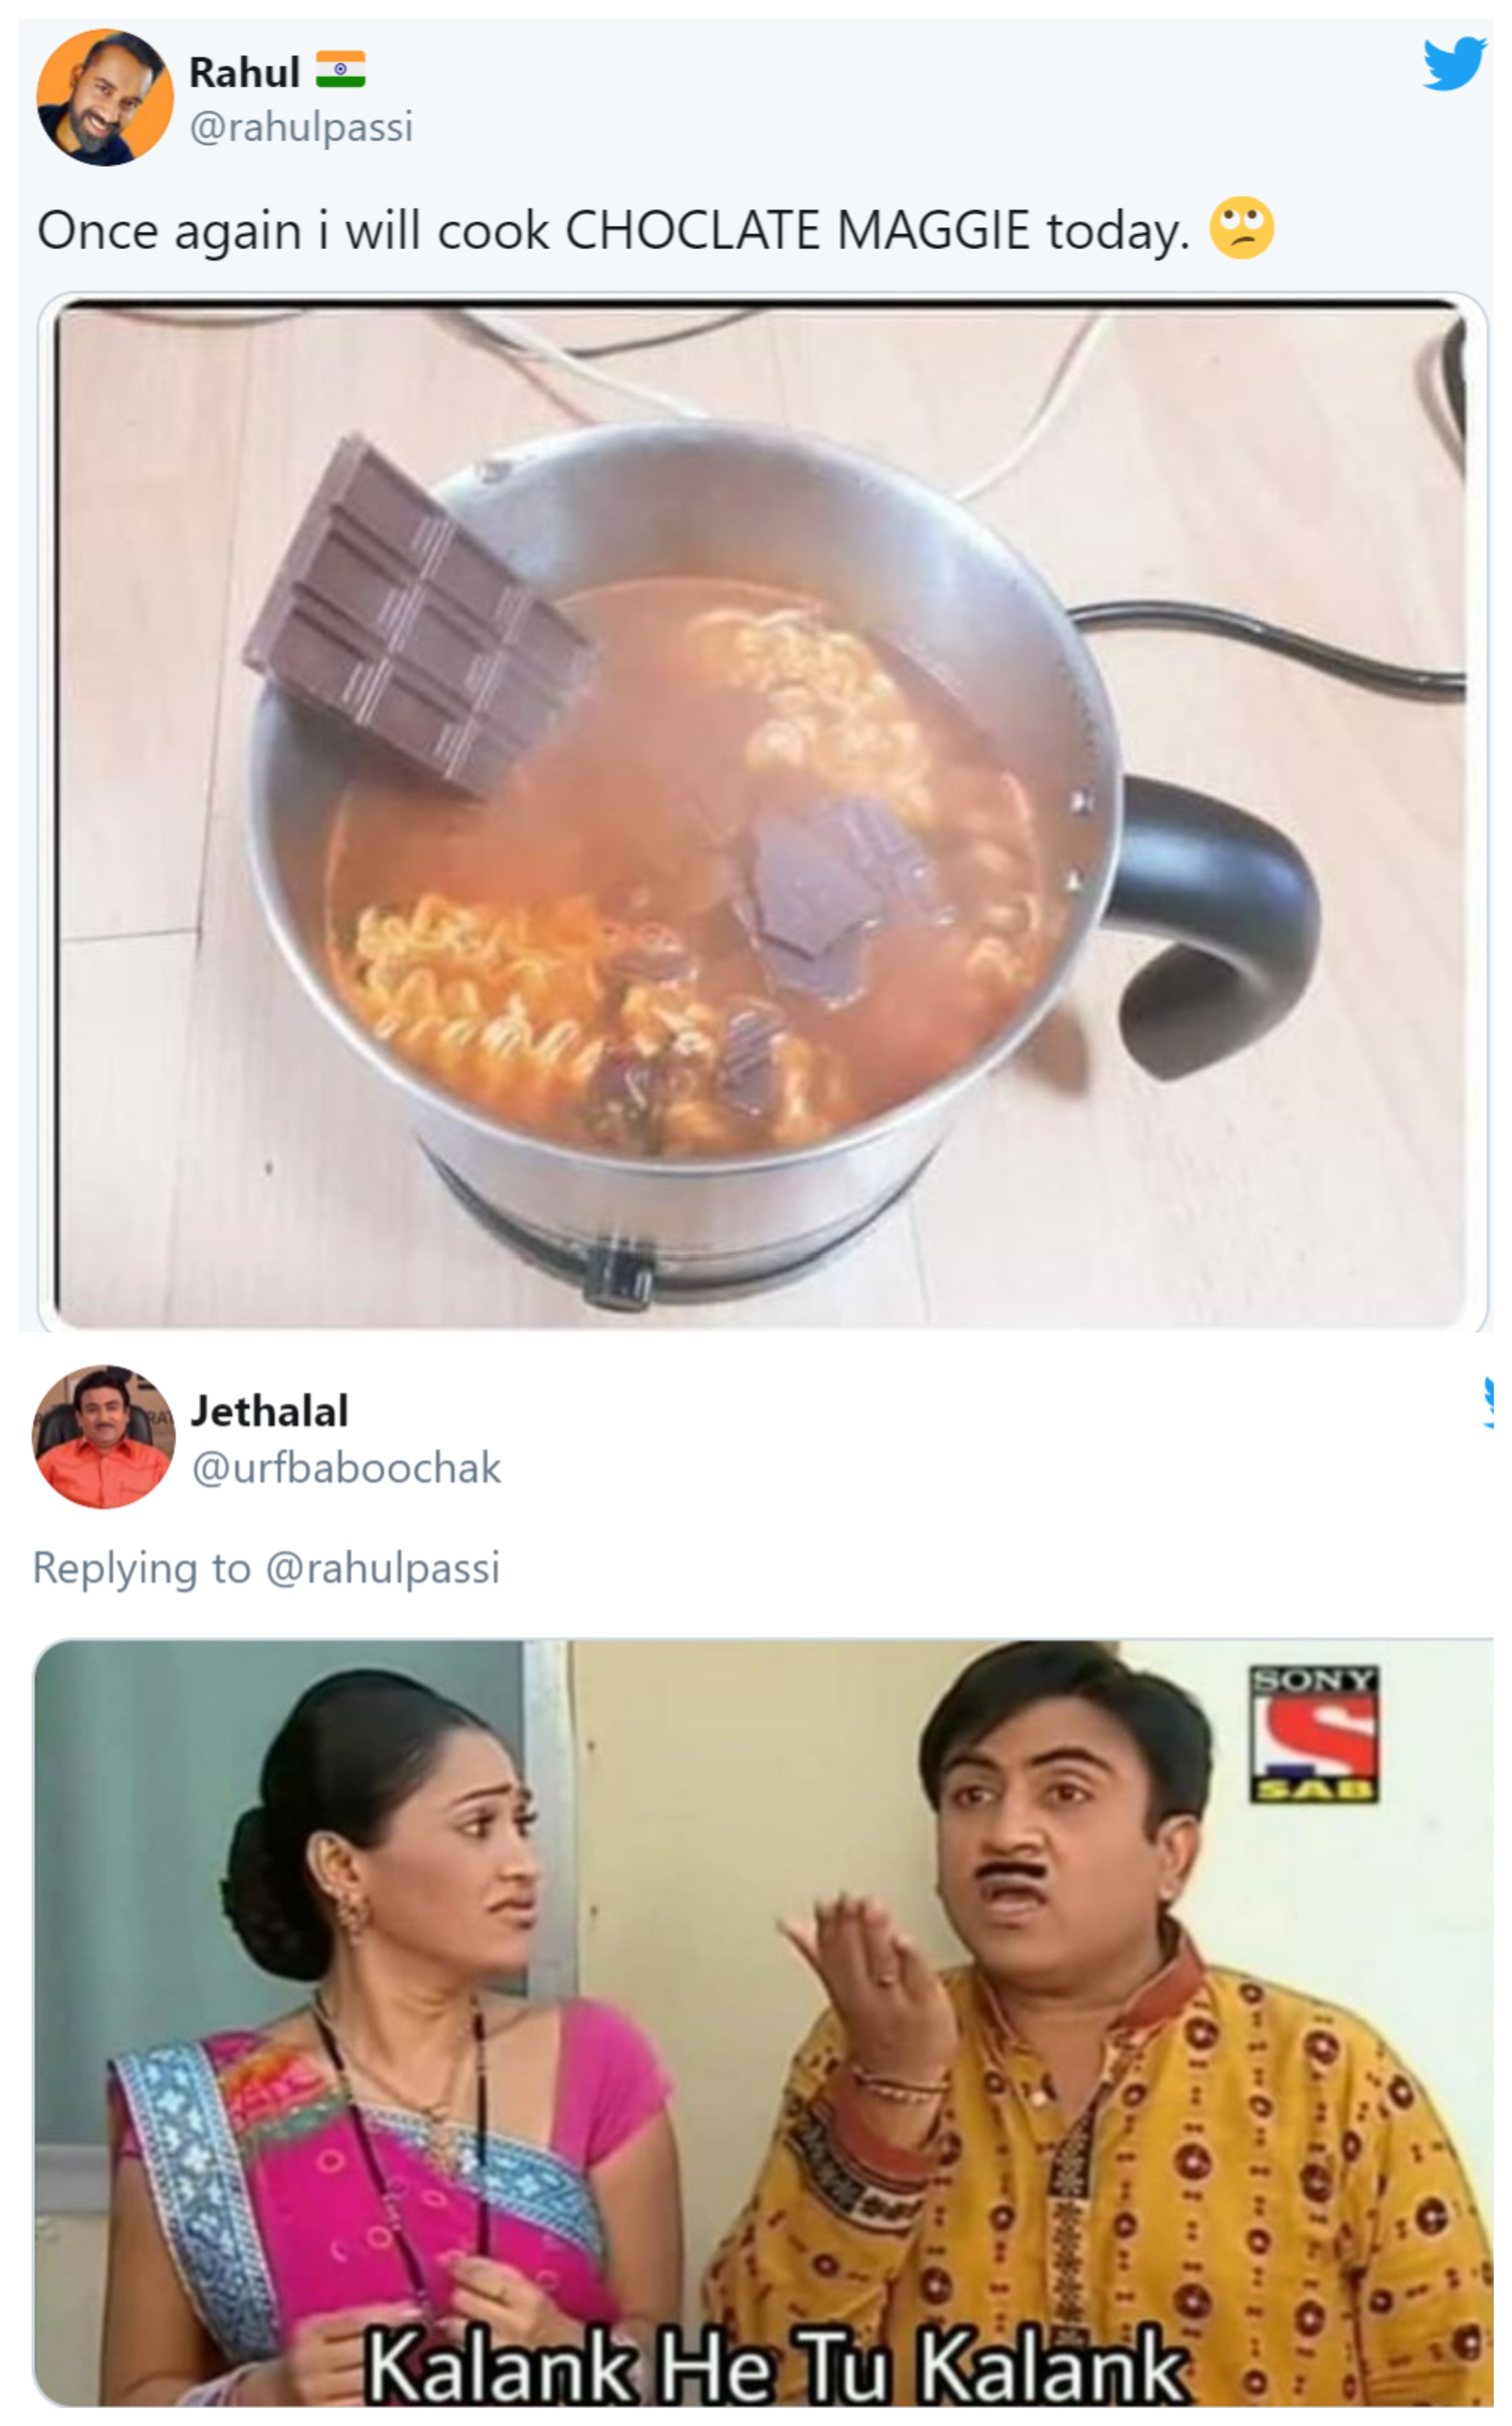 Twitter Says Tauba Tauba After A User Posted Chocolate Maggi Recipe